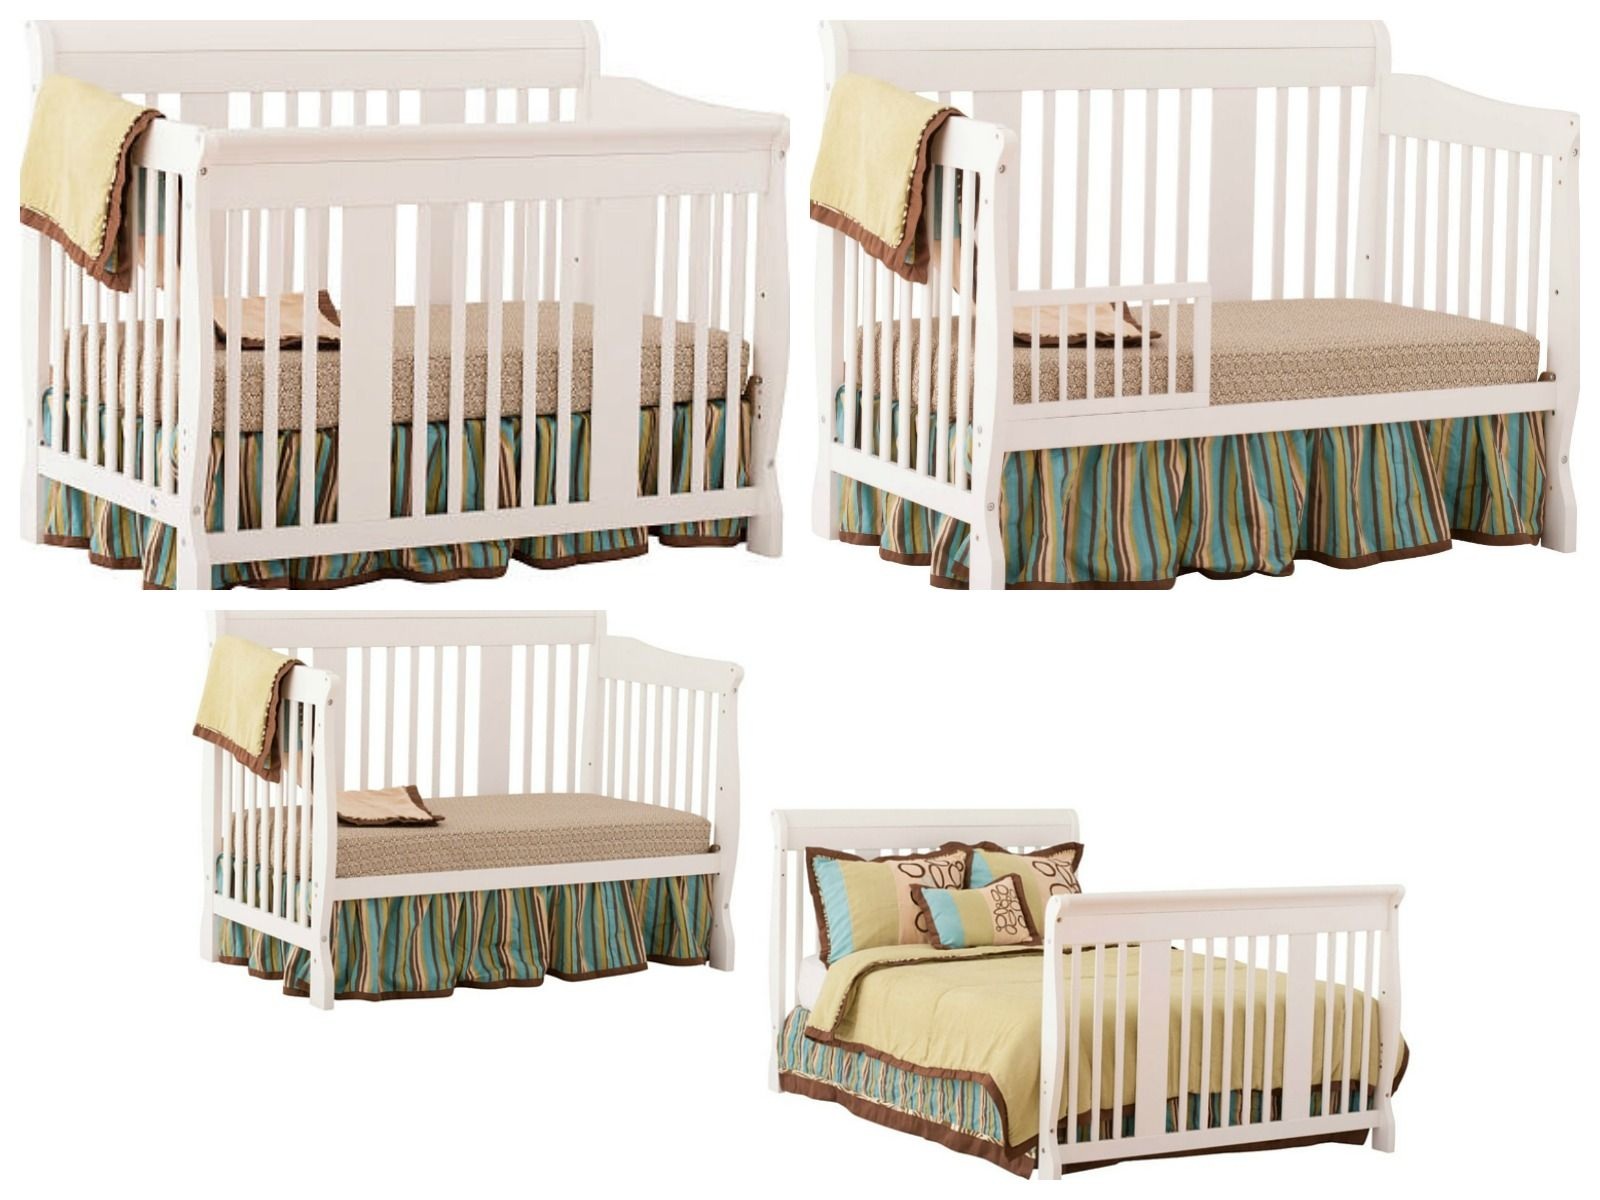 few but grey shell simple bumper mattress new things bed include baby rustic arianna linen nursery full quality and newborn high set girl sets cot pink fitted the peanut bedding a crib cribs sheets overlook boy designer teal amateurs piece car small size quilt white oval of